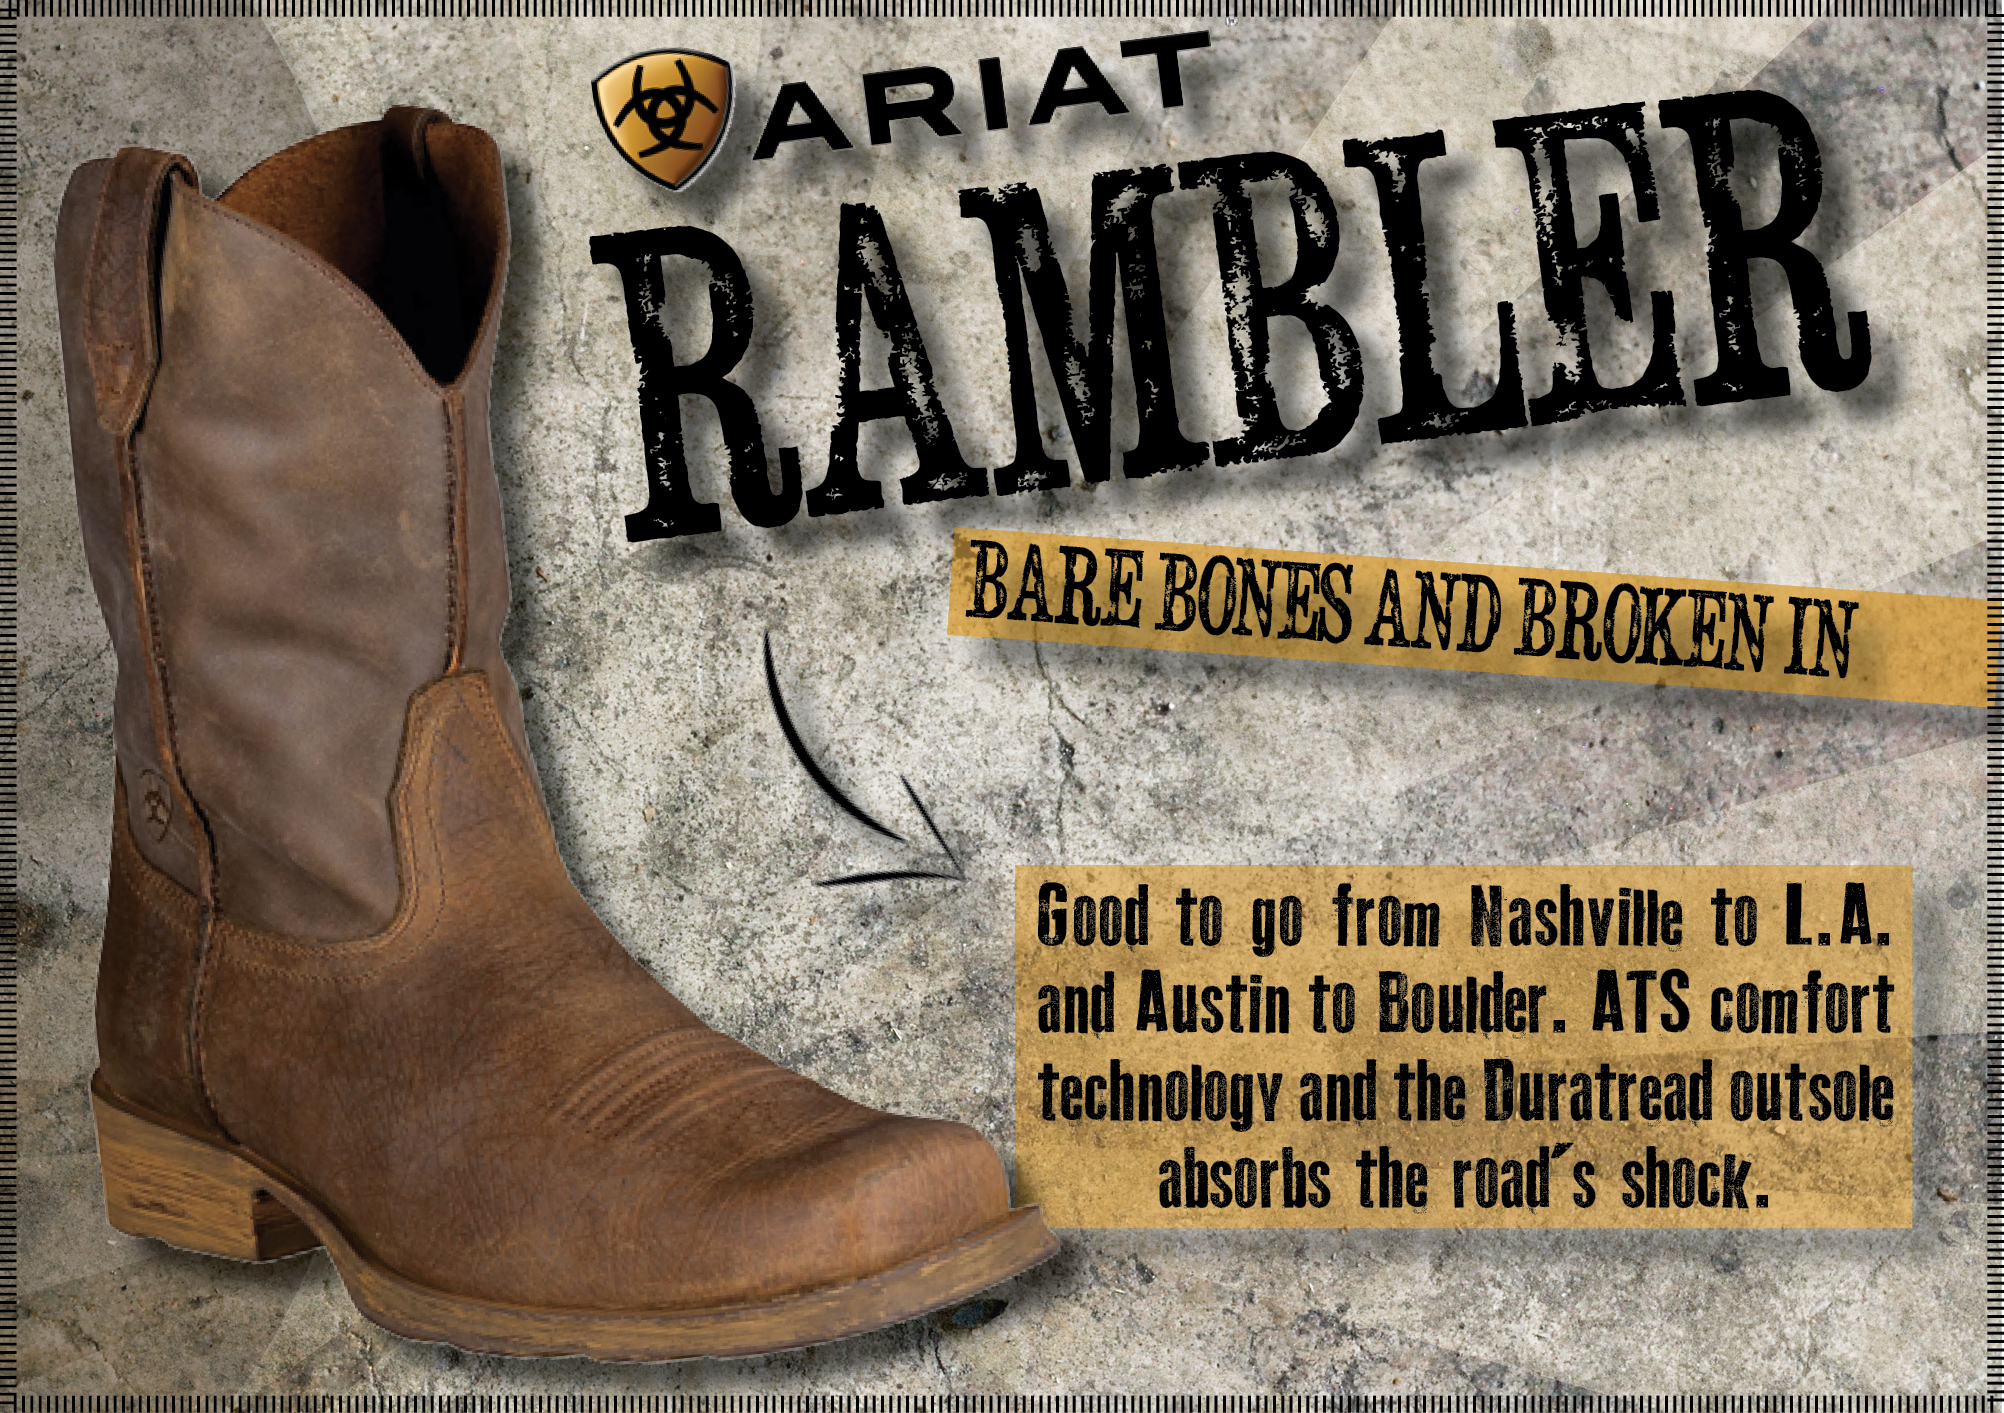 27e9c8757a0 Ariat® Rambler Men's New West Style Cowboy Boots in Earth Brown Bomber -  Available in Extra Large Sizes & Widths...